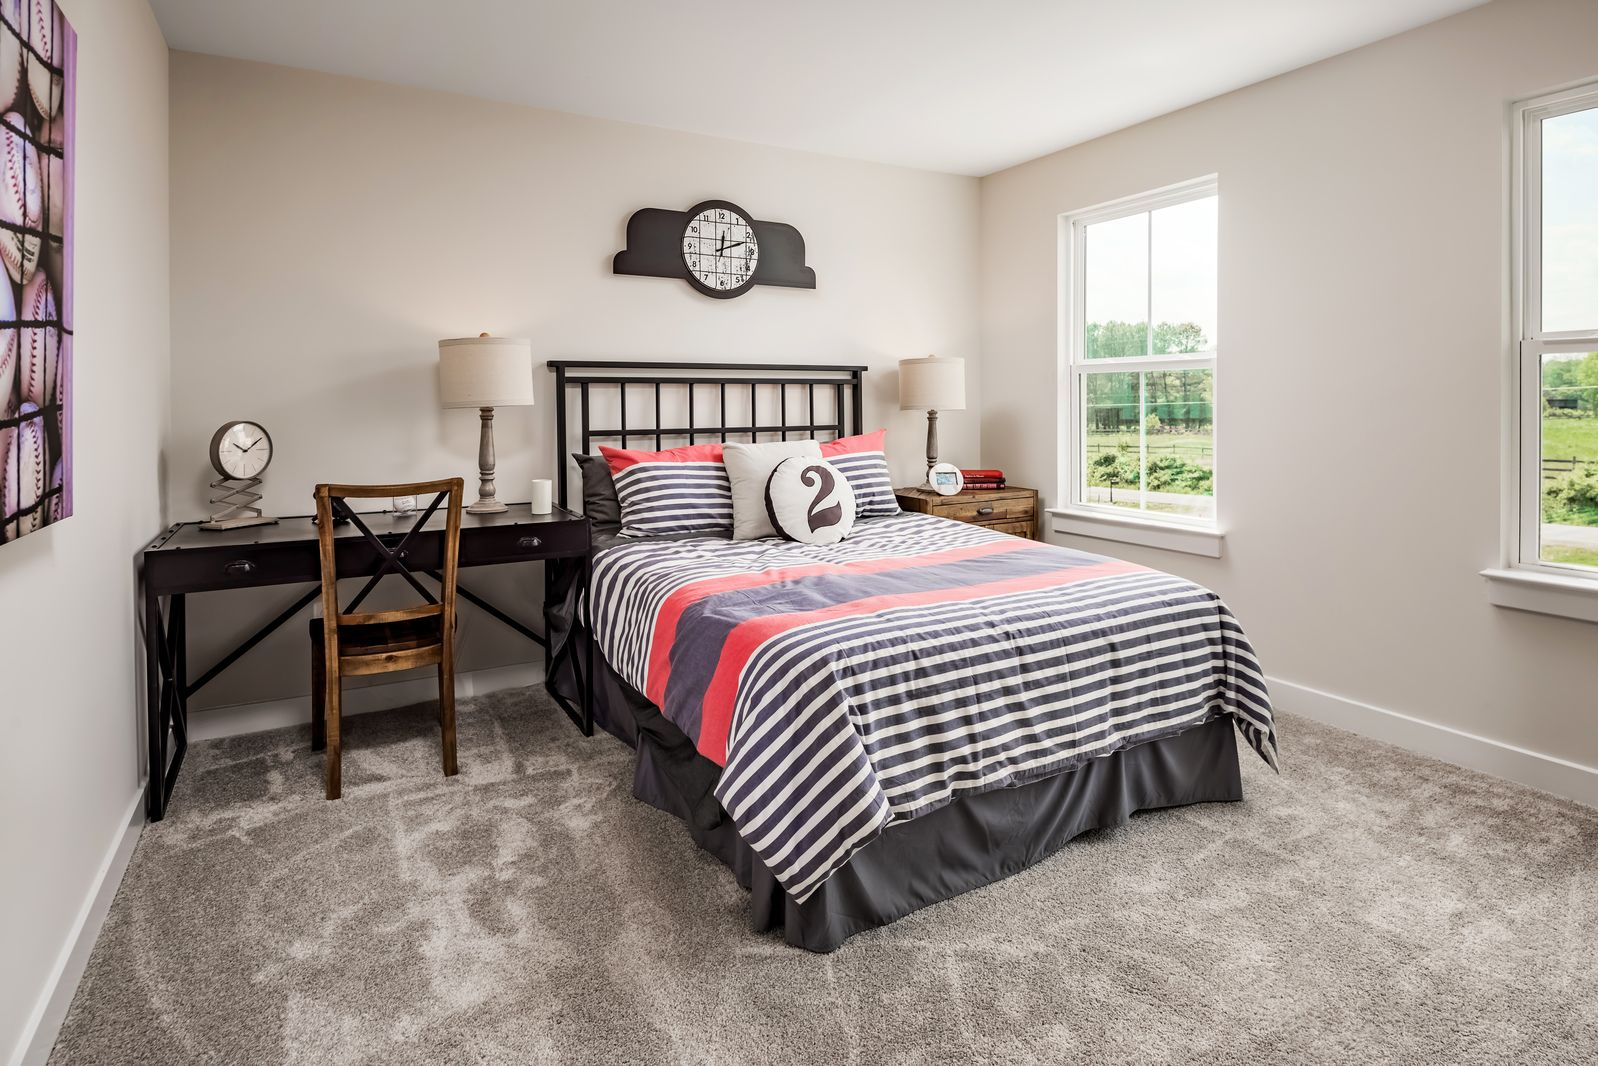 Bedroom featured in the York at Hartland By Ryan Homes in Washington, VA